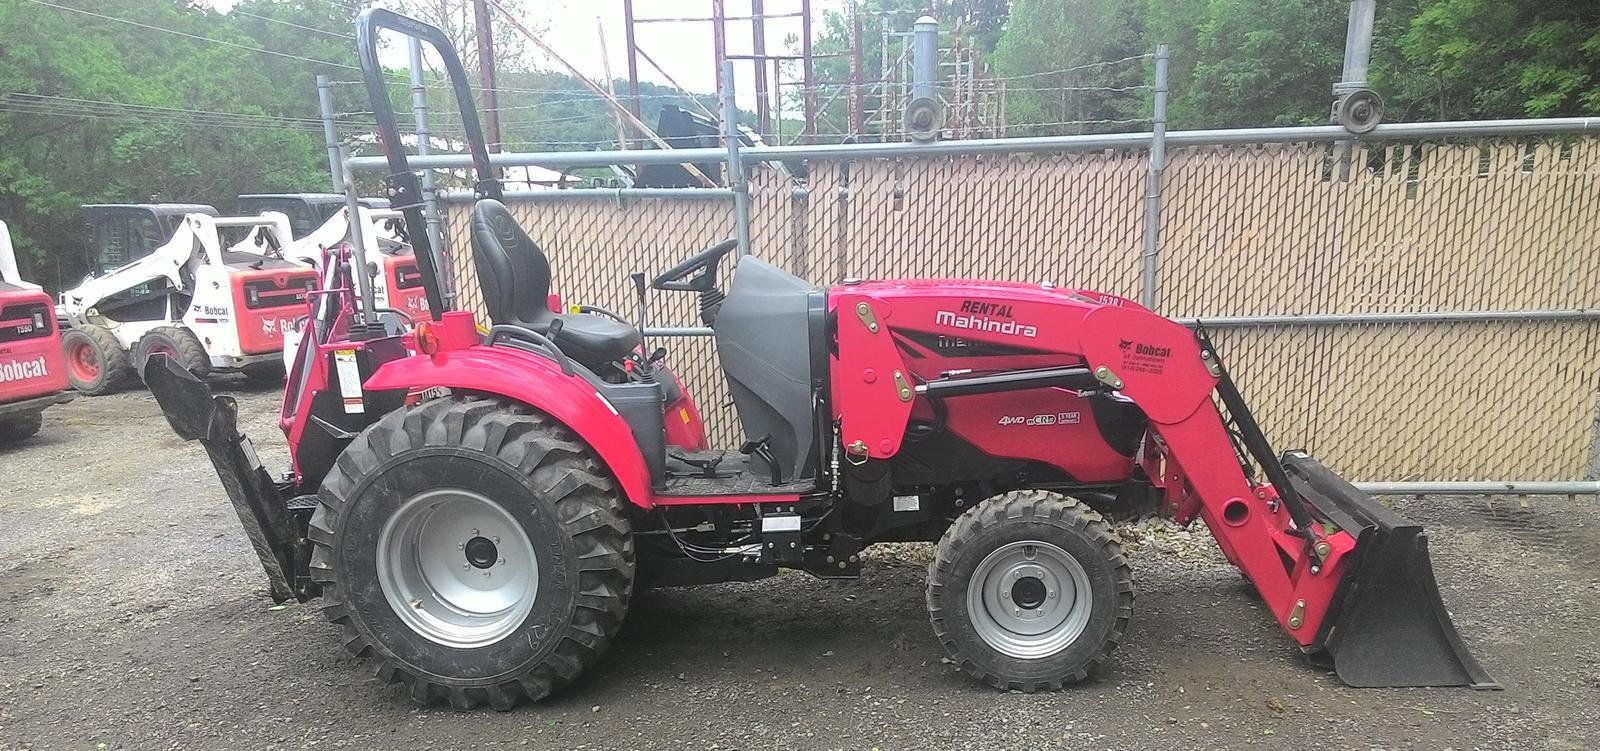 Mahindra 1538, Mahindra Tractor for sale in Johnstown, PA